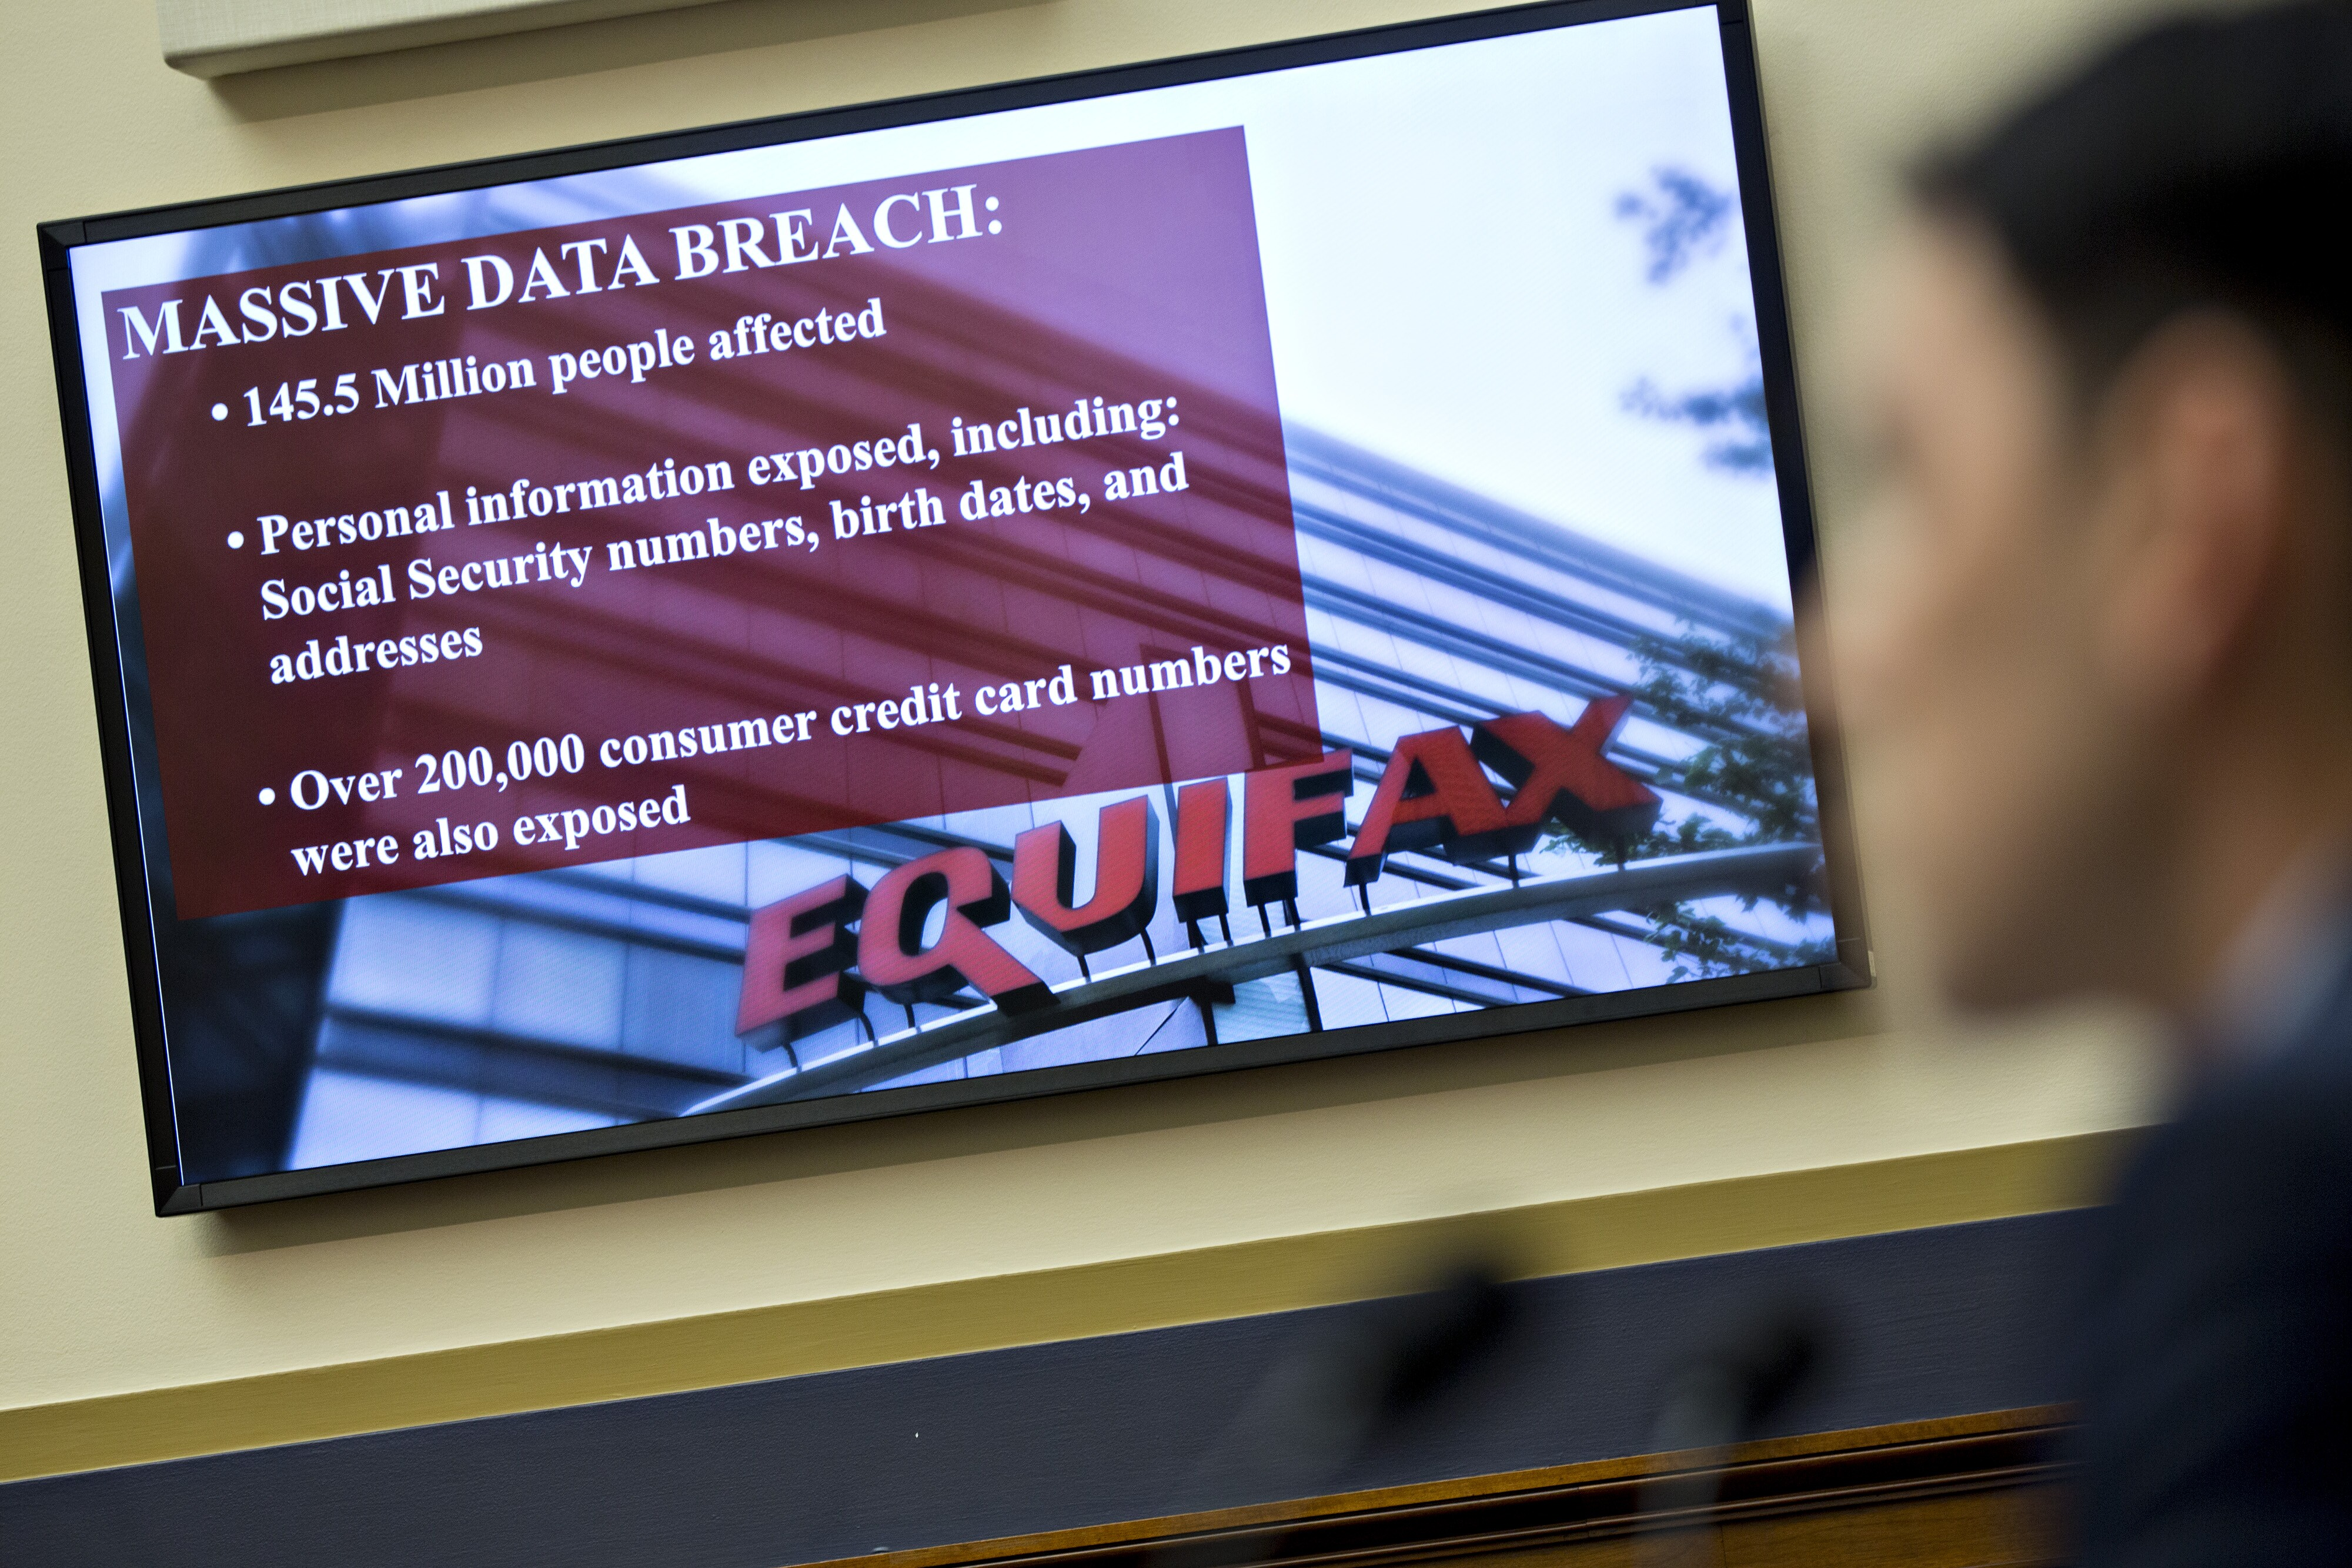 Congressional backlash at equifax data breach spares its business model 021318 equifaxpic reheart Image collections